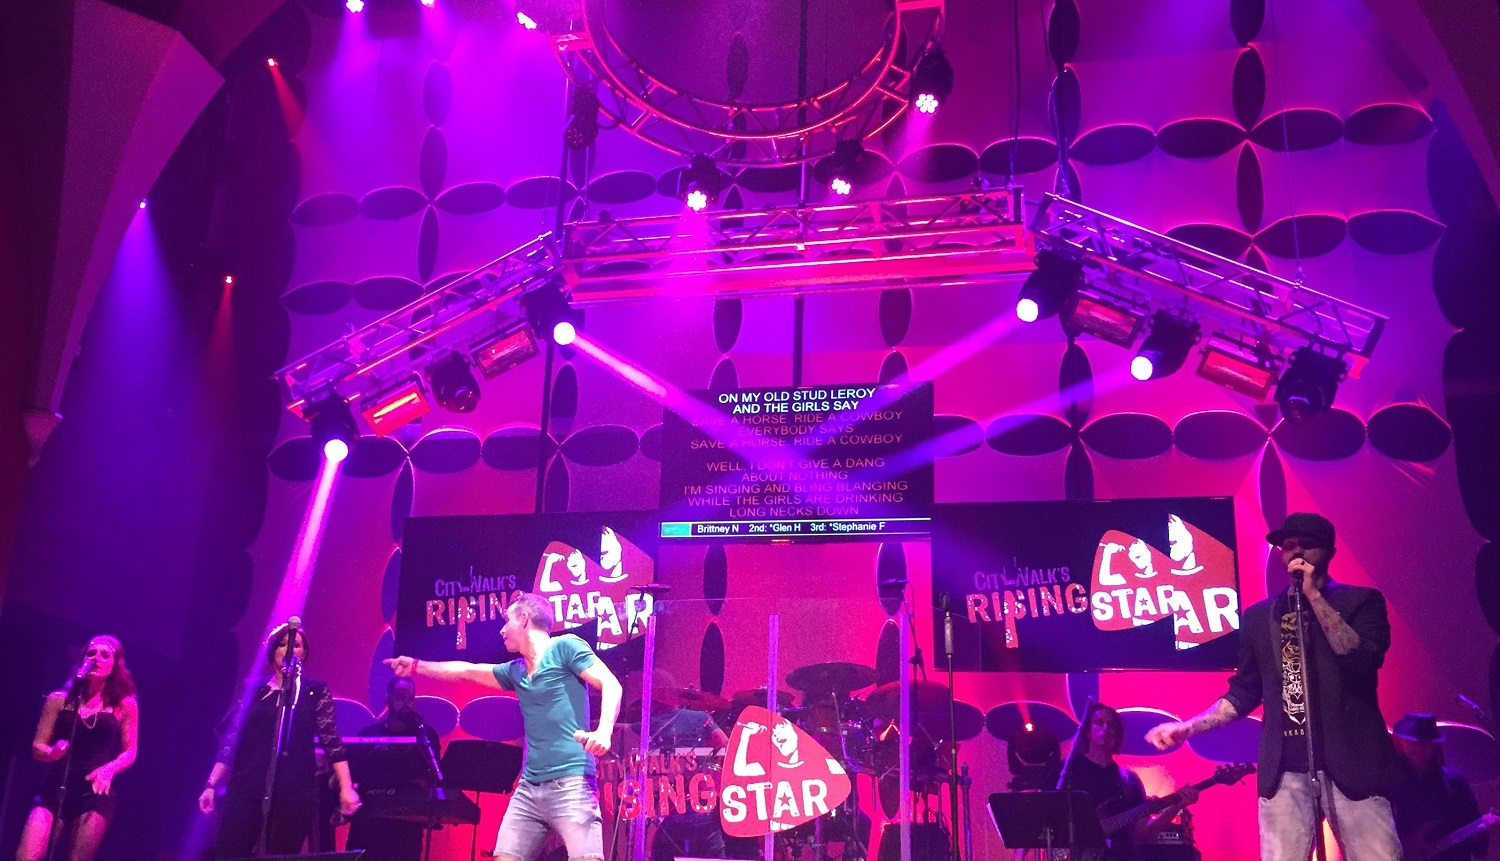 A band with back-up singers accompany a performer on CityWalk's Rising Star stage.